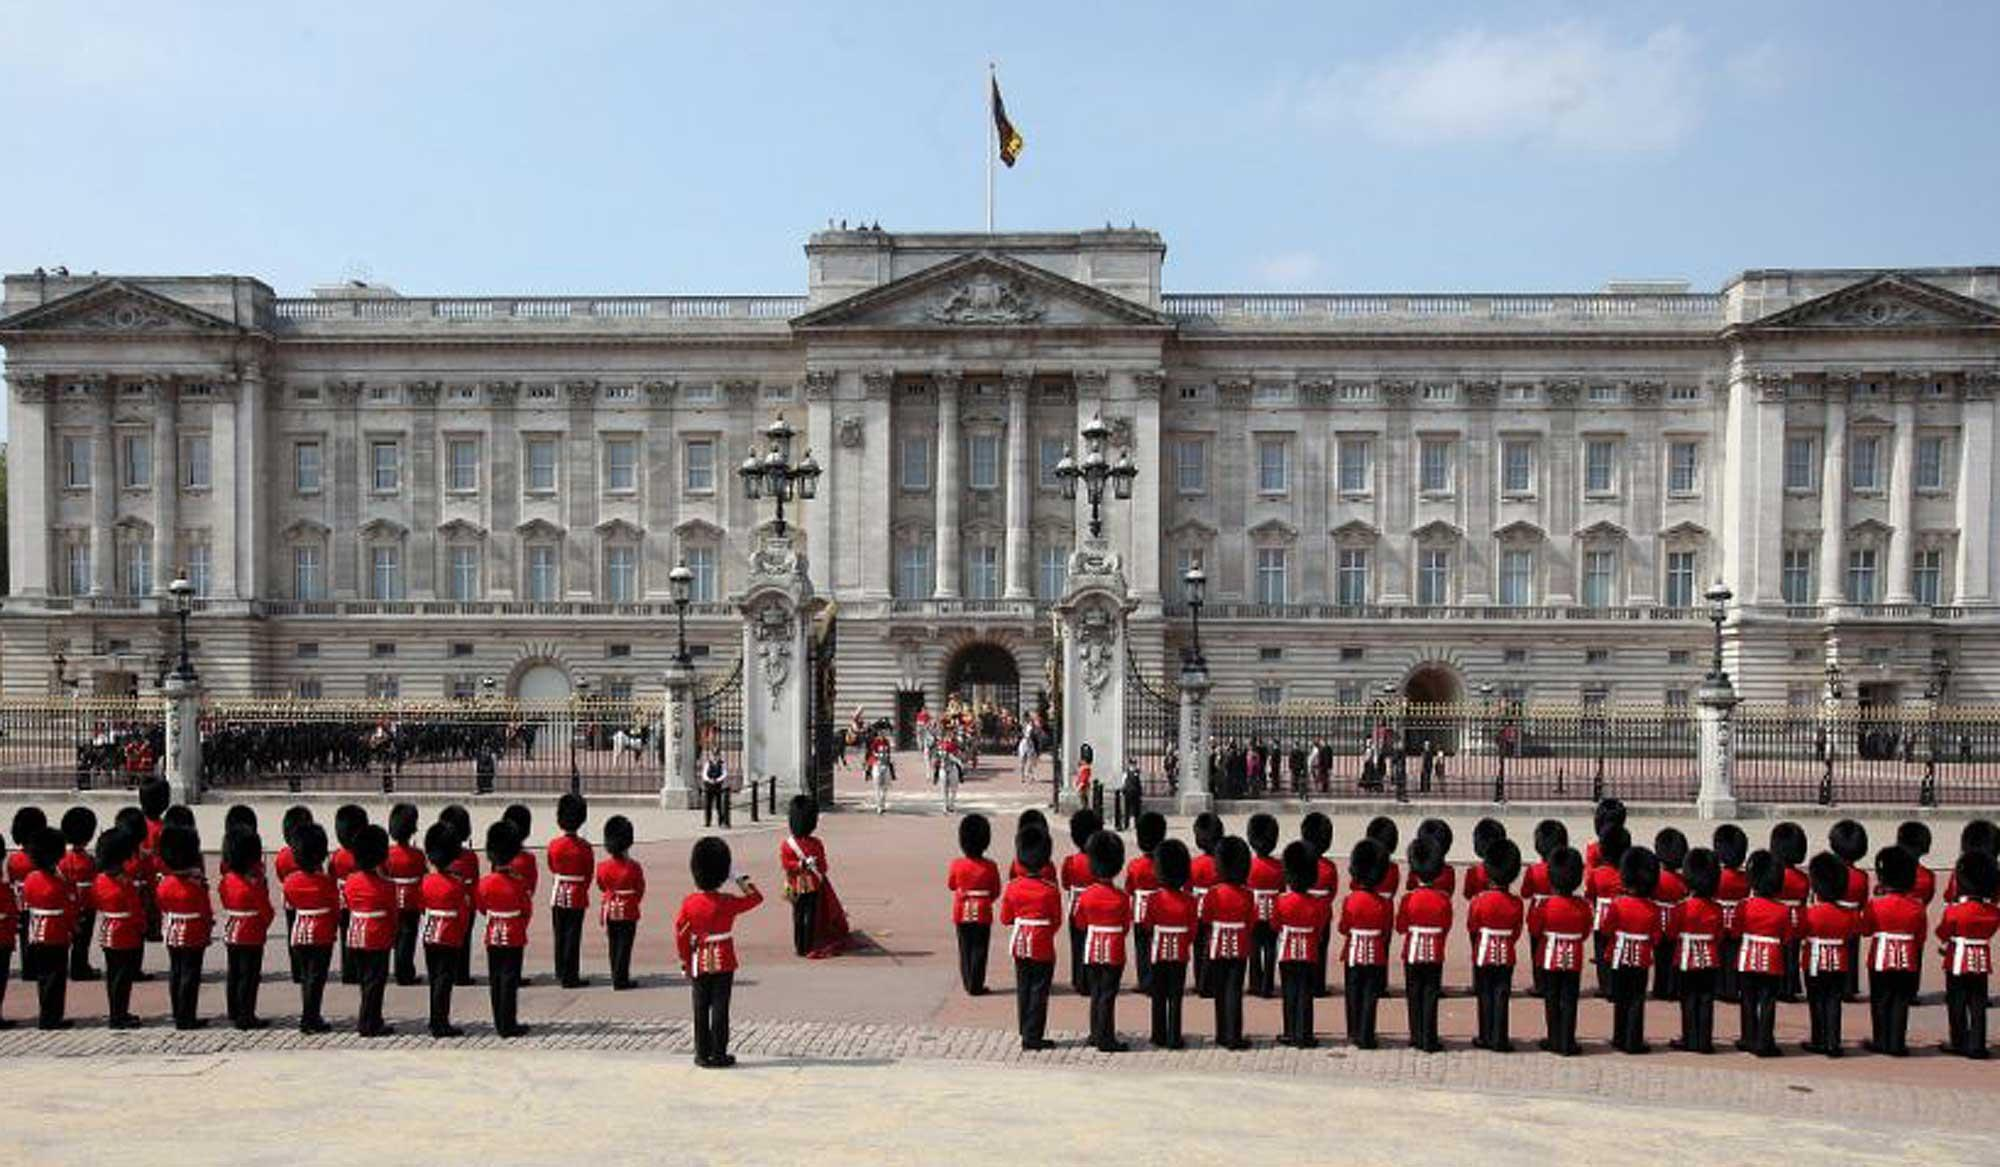 Buckingham Palace Royals in Balcony Photo (C) GETTY IMAGES